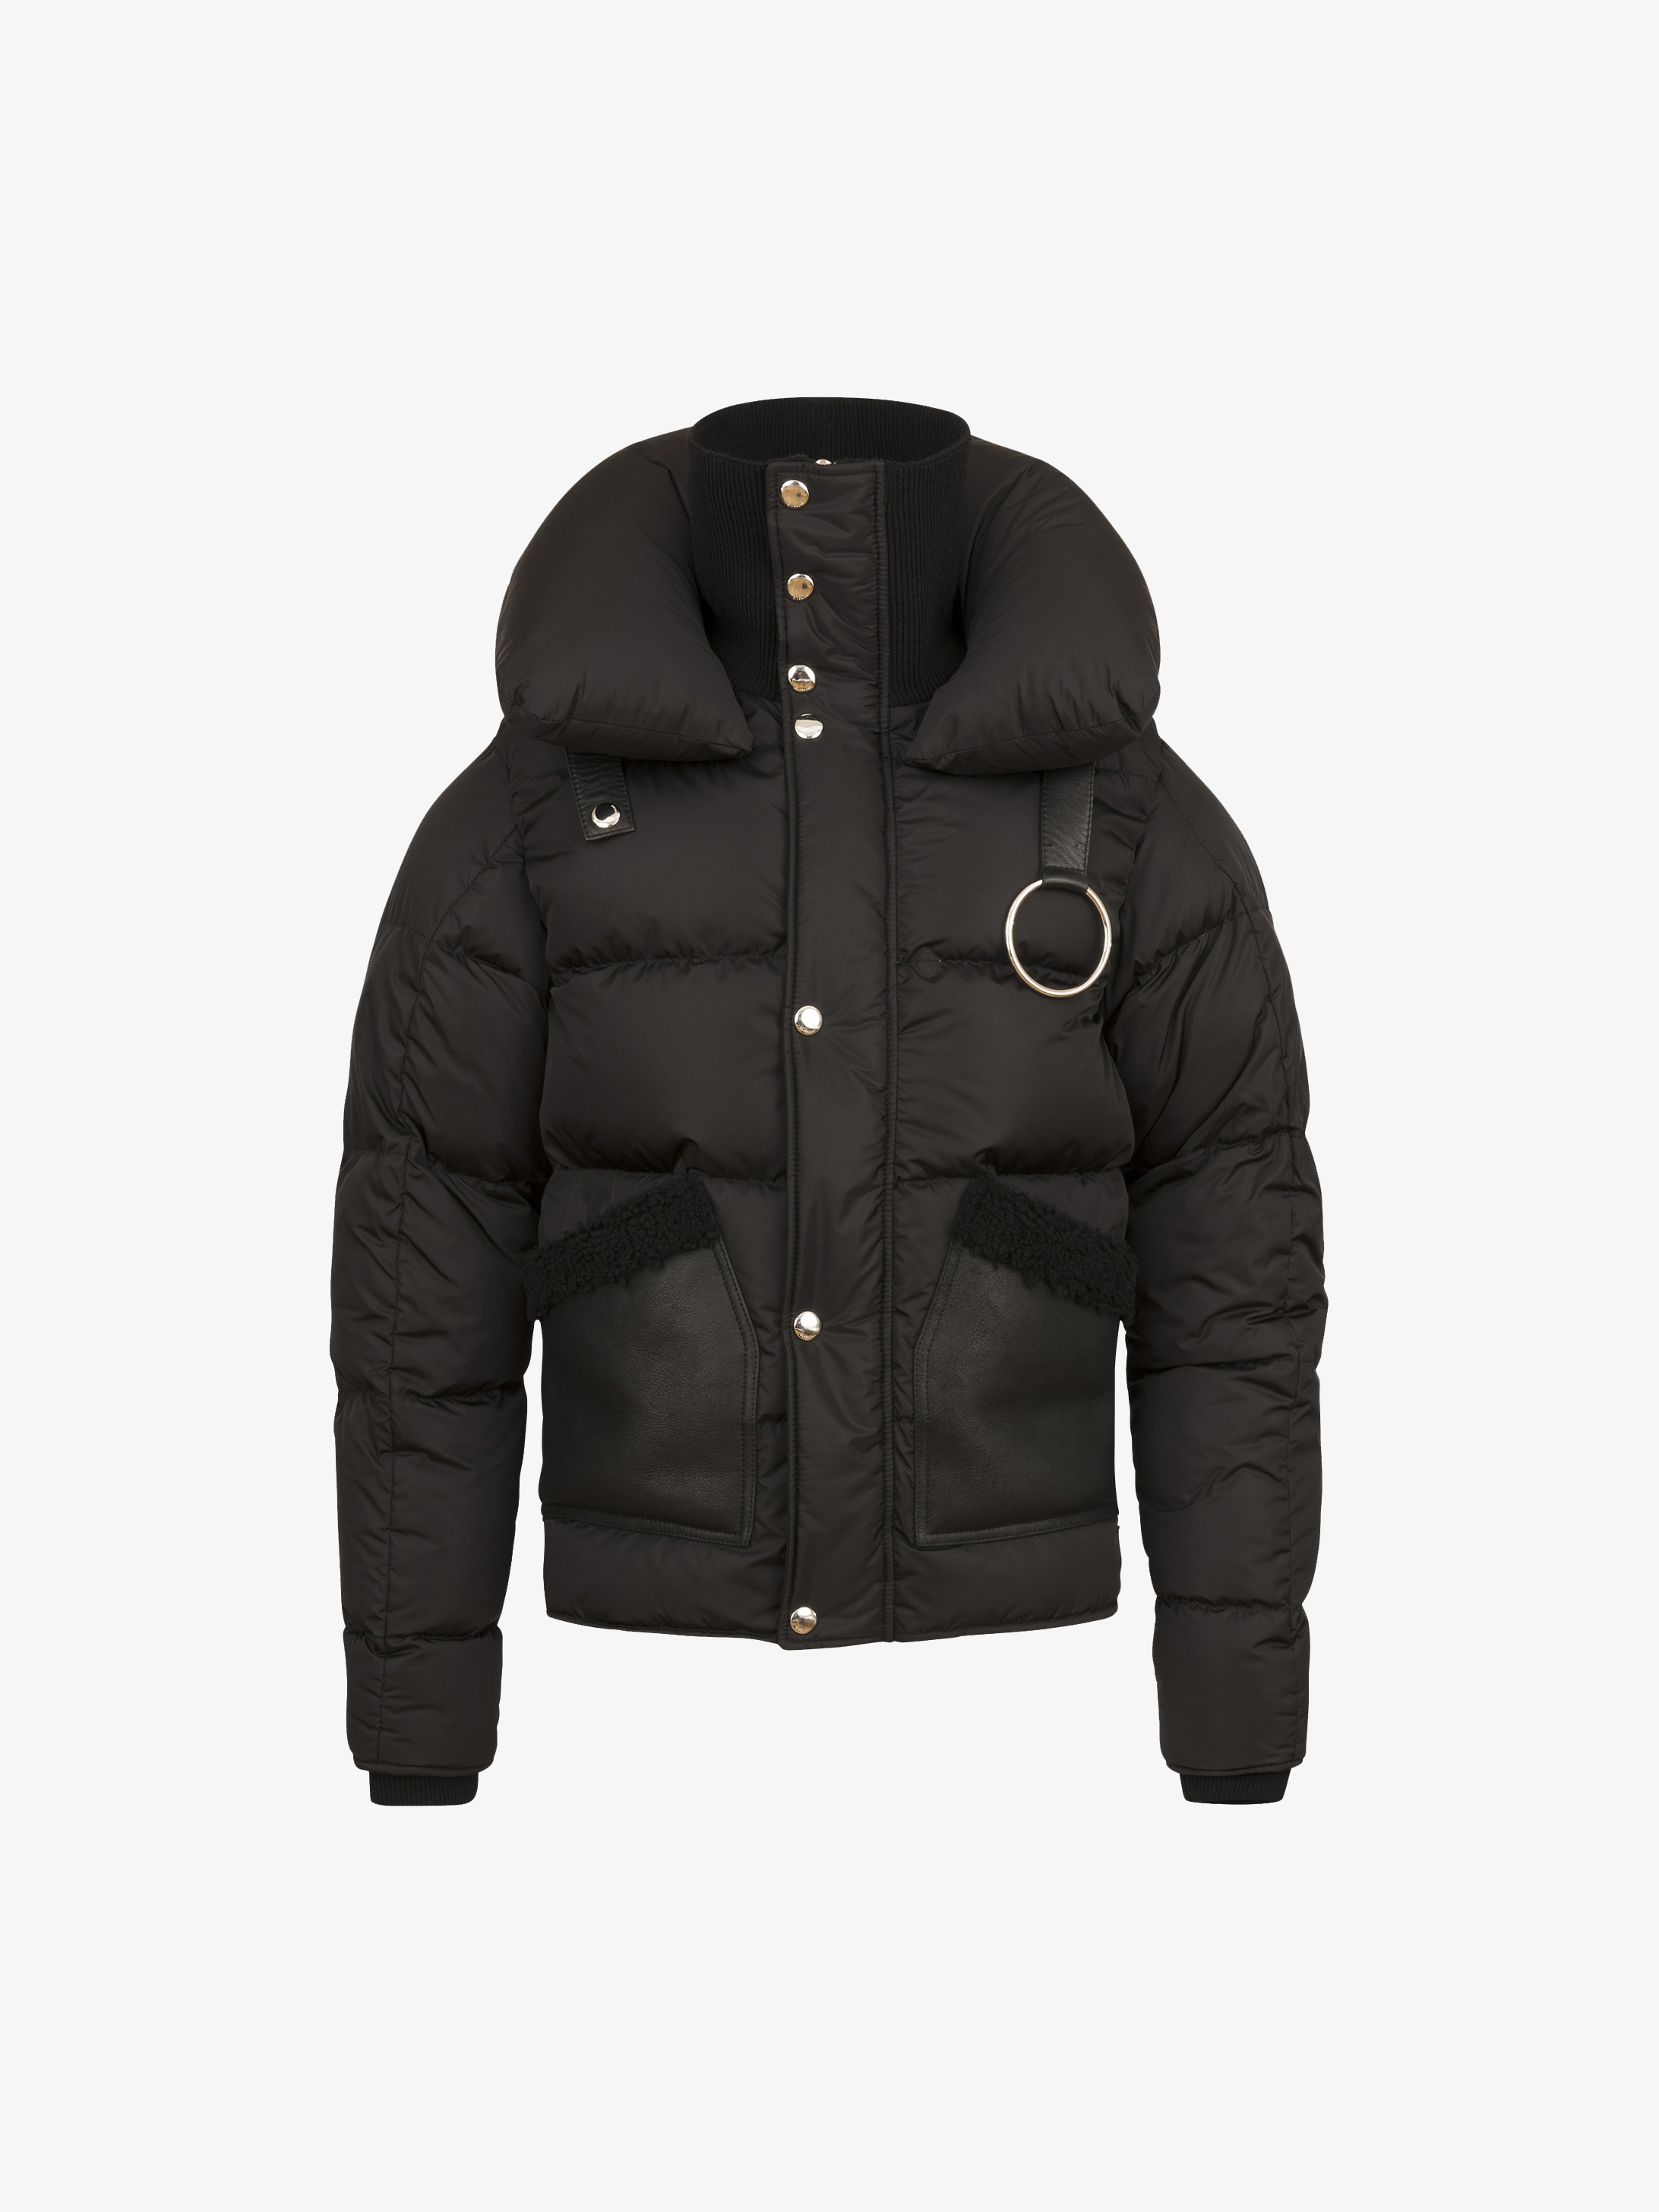 Puffa jacket with leather pockets